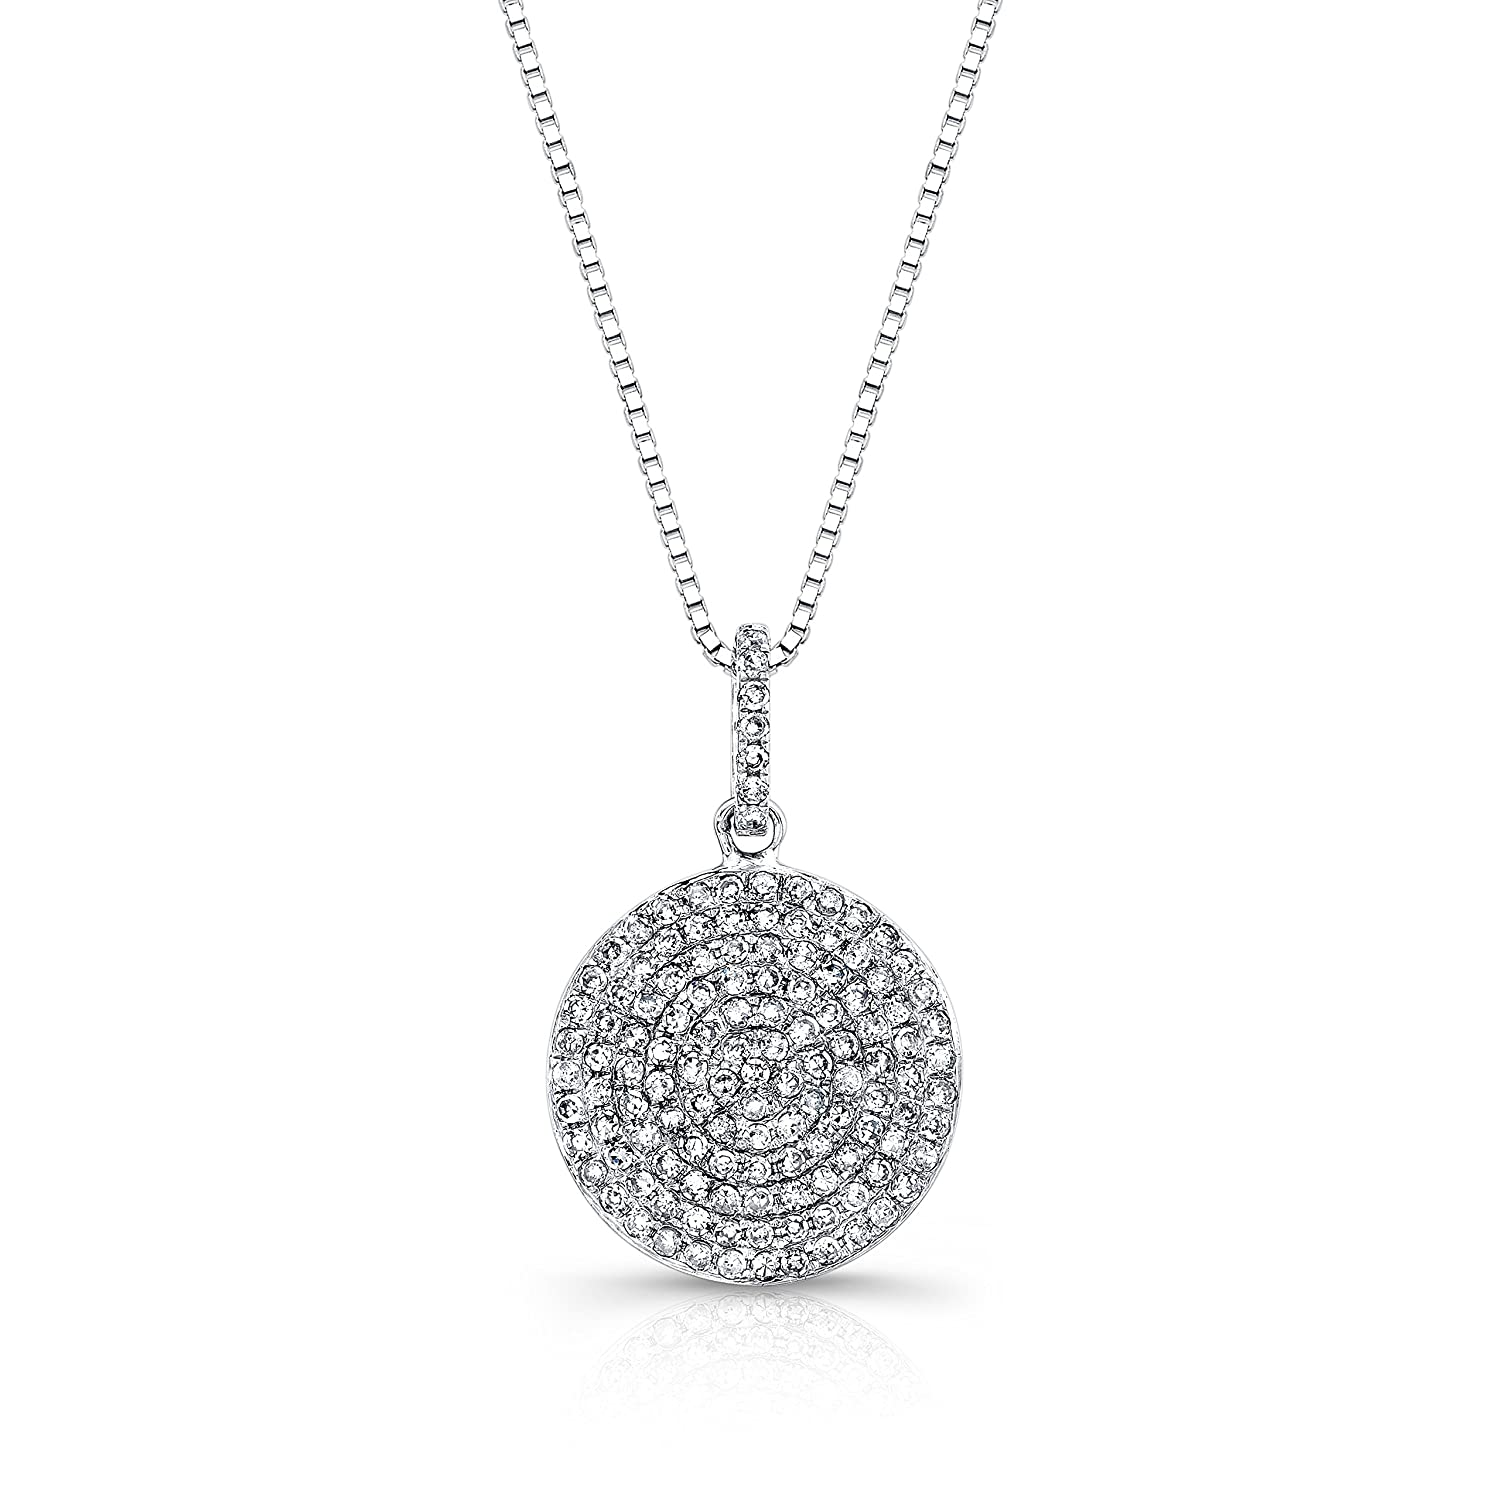 546d2fe51ba2b 14k White Gold Circle Pave Diamond Disc Pendant Necklace (1/2cttw) with  18-inch chain by Diamond Wish